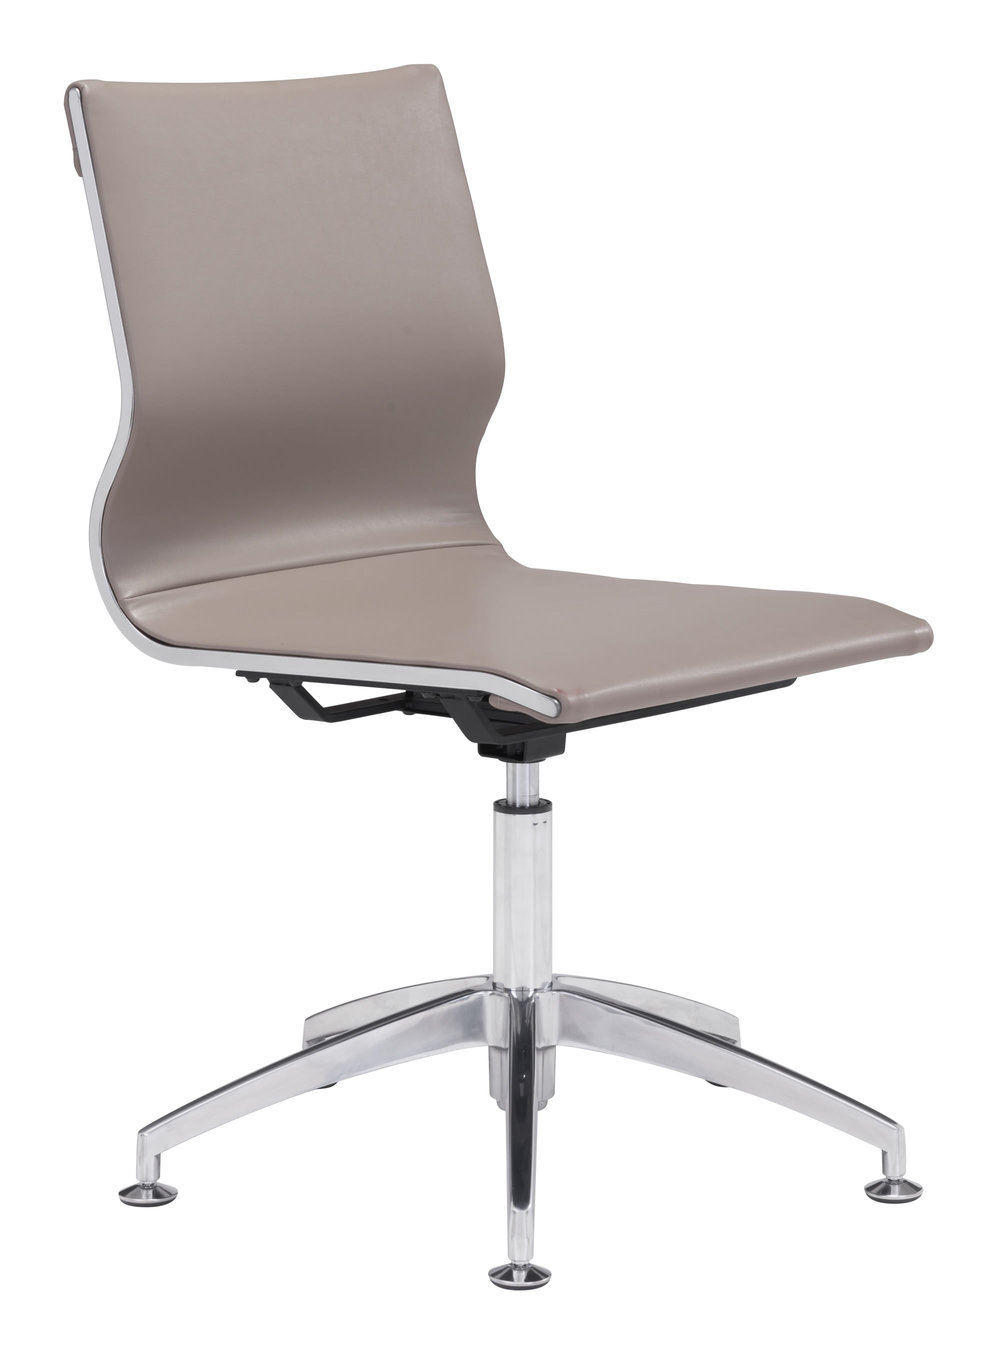 Zuo Modern Contemporary - Glider Conference Chair Taupe